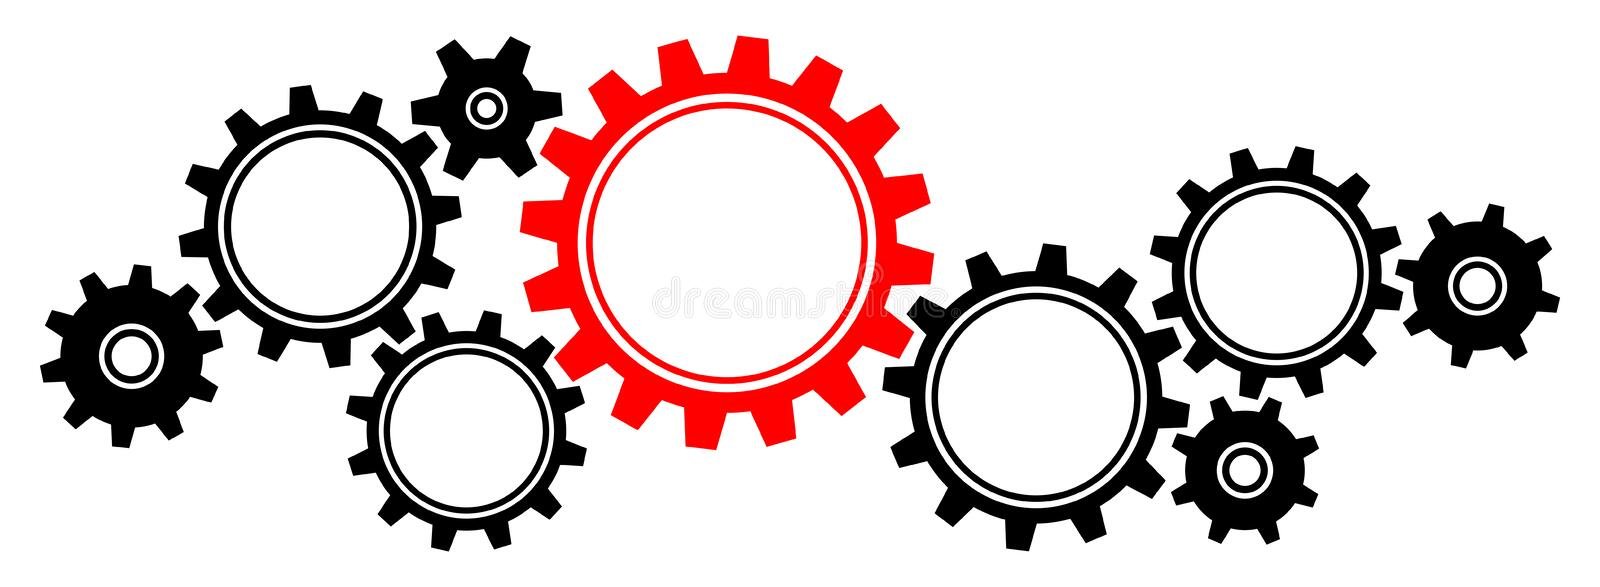 Nine Big And Little Gears Border Graphics Black And Red Horizontal stock illustration